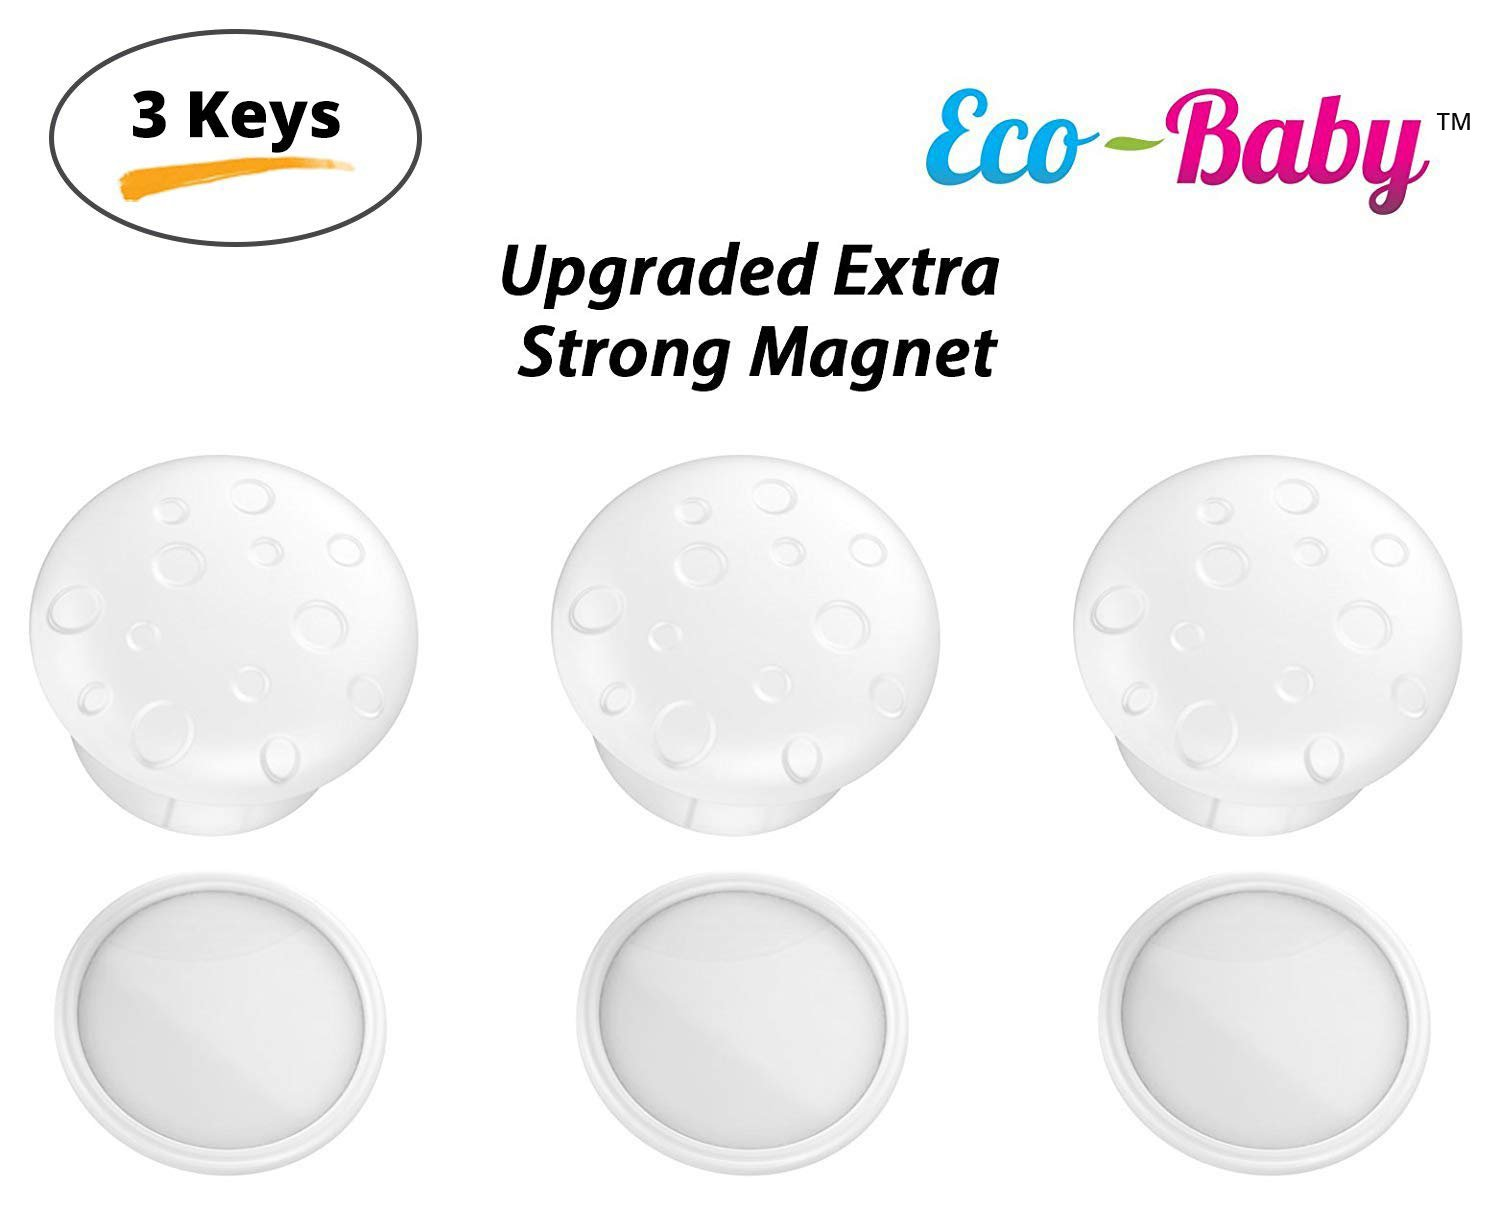 Universal Magnetic Safety Lock Key Replacements for Most Baby Child Proof Cabinet Drawer Locks by Ecobaby – Pack of 3 Magnetic Keys with 3 Adhesive Key Holders Extra Strong Reliable